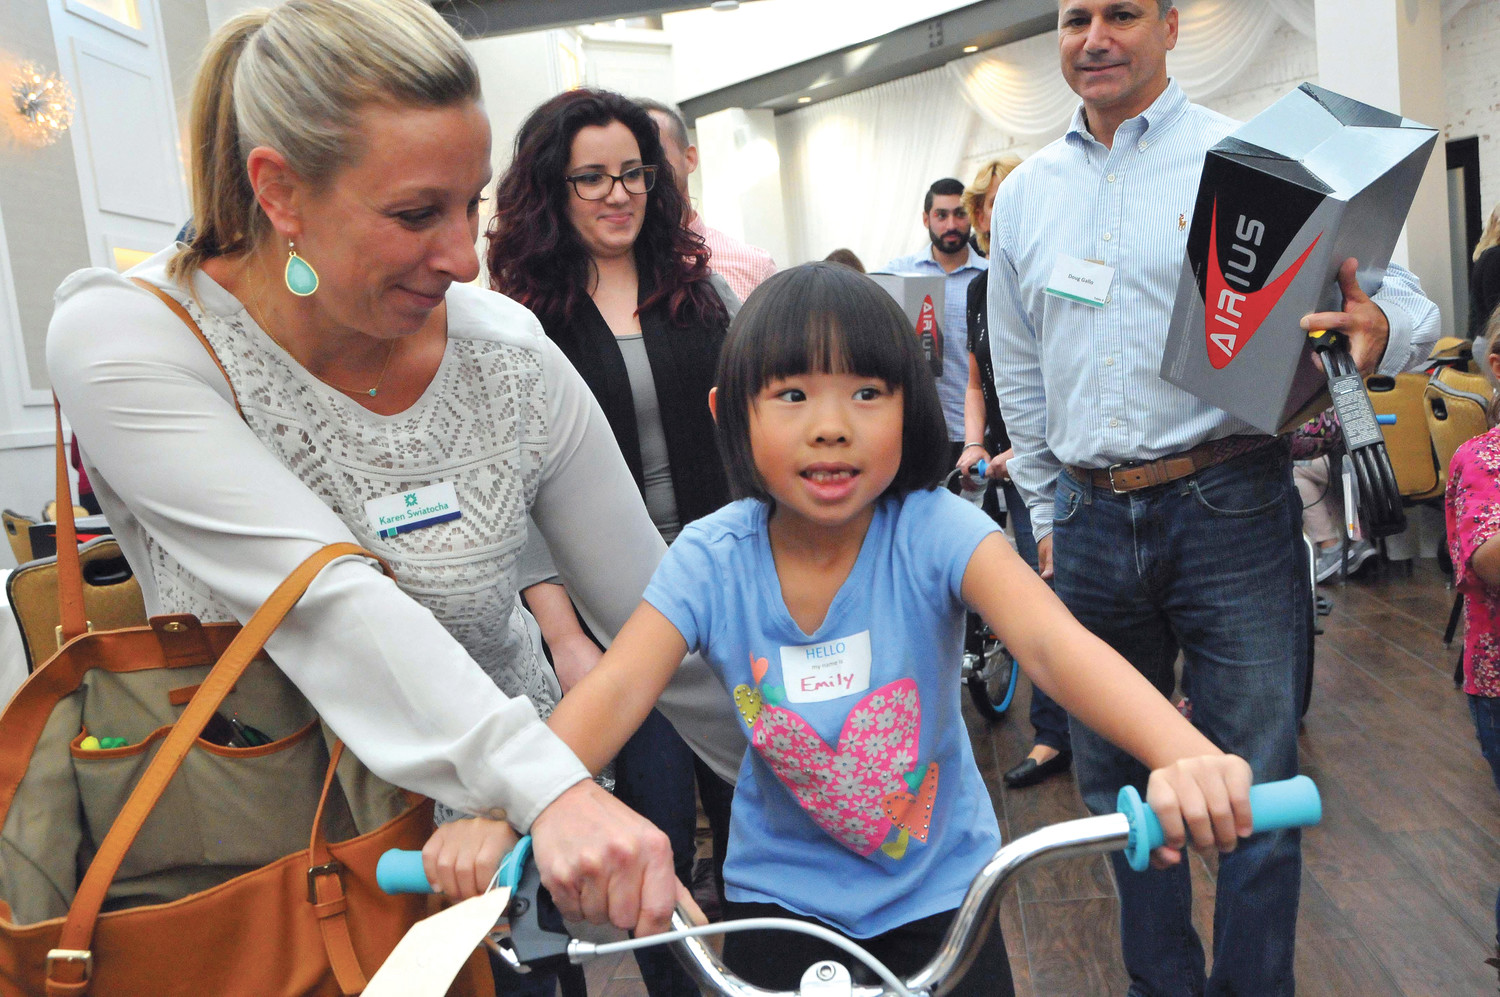 READY TO RIDE: Karen Swiatocha makes sure that first grade student Emily has her balance.